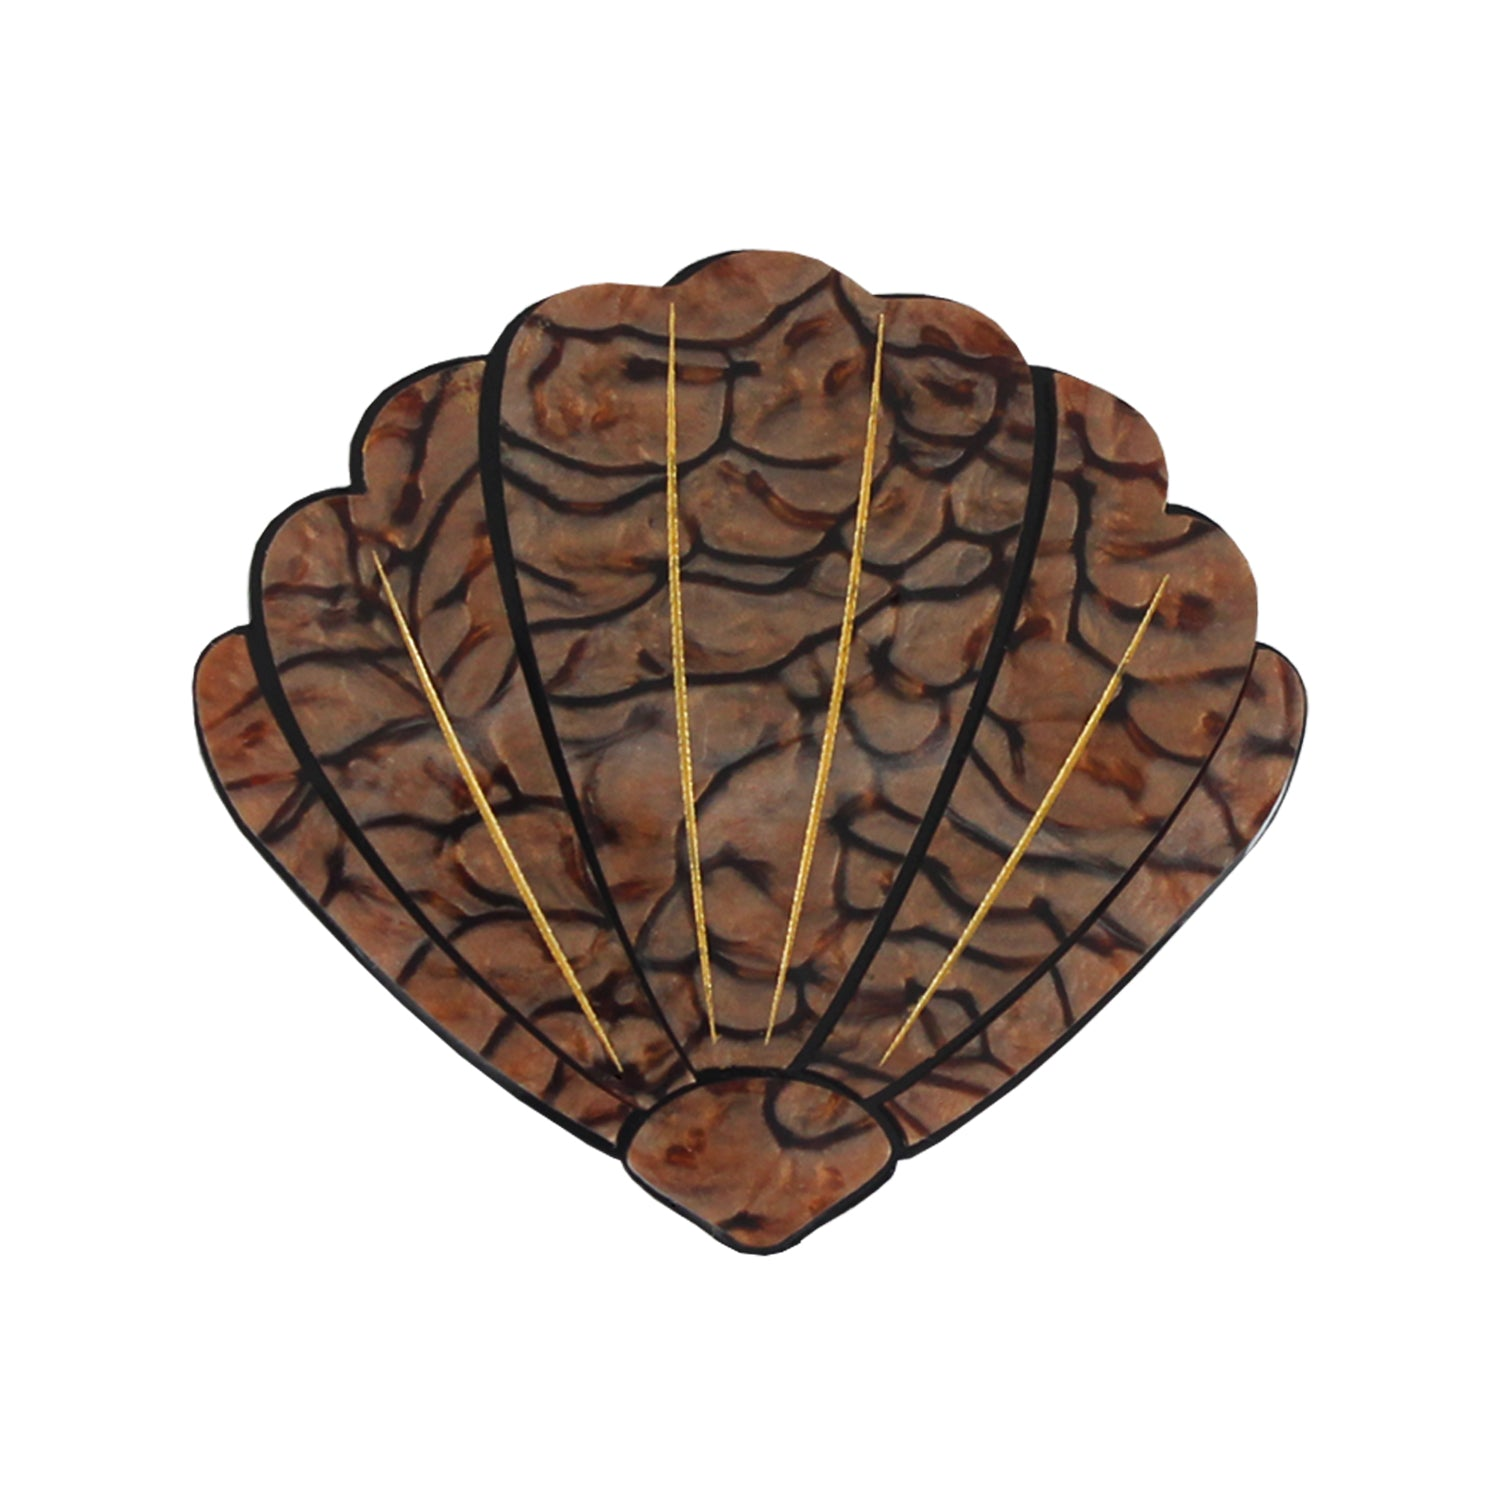 Brown Shell brooch